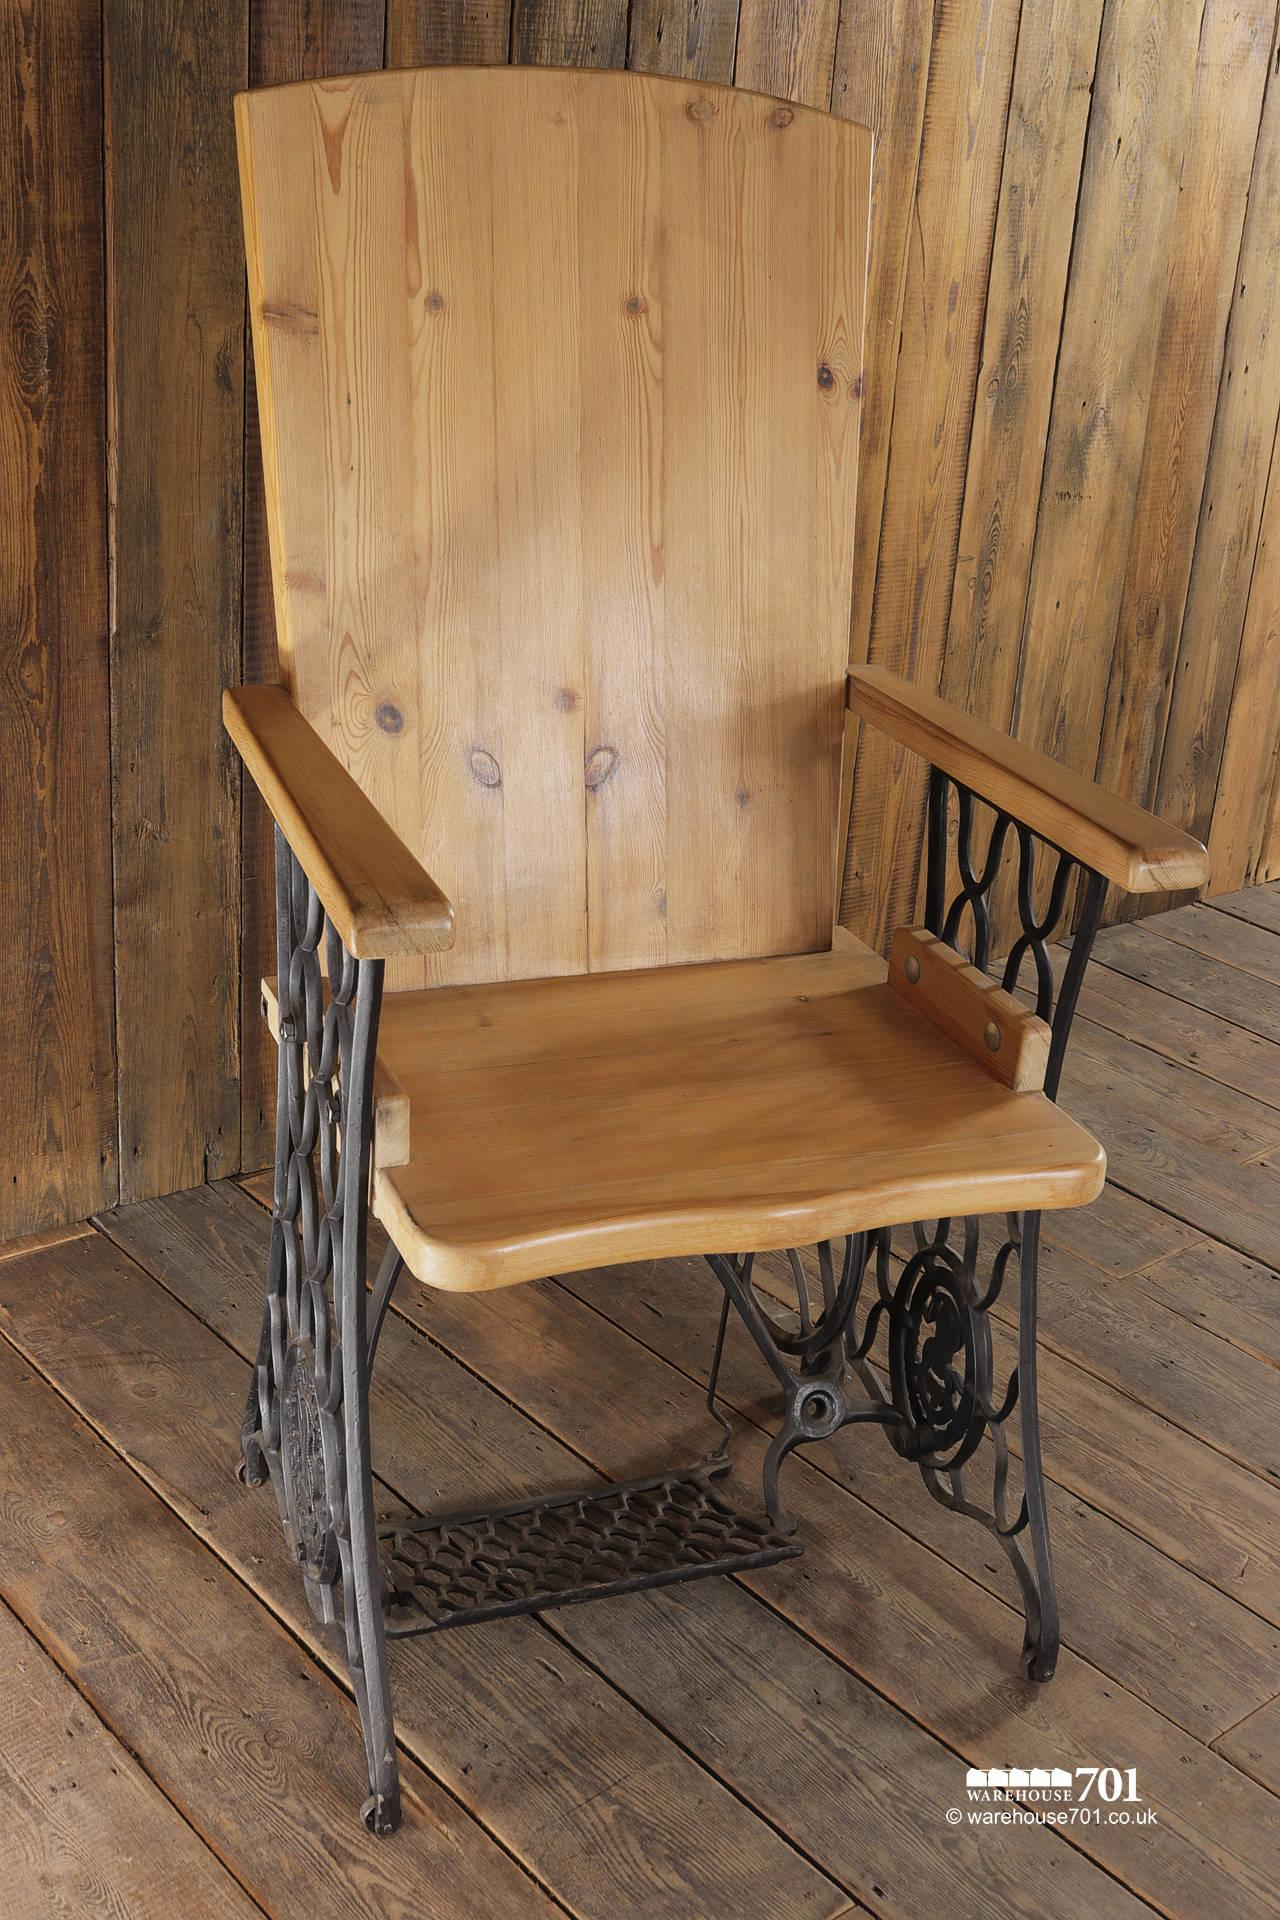 Handmade Chair with Authentic Singer Sewing Machine Treadle Frame #7